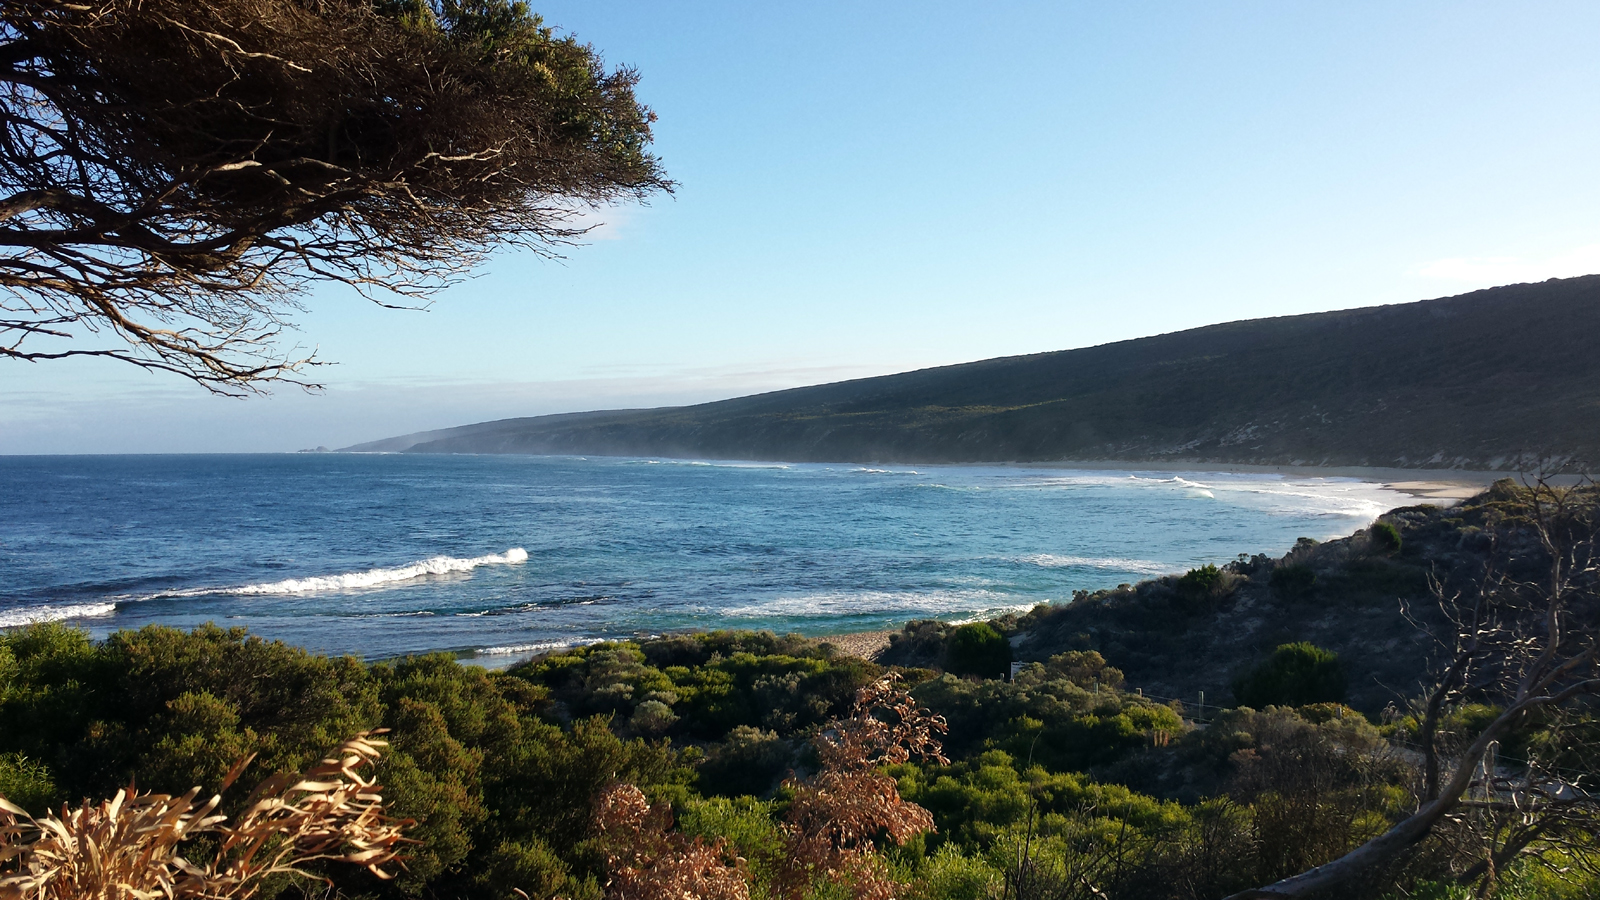 Ocean with rolling surf and a beach, seen though a weather-shaped tree and foreground foliage on a sunny day